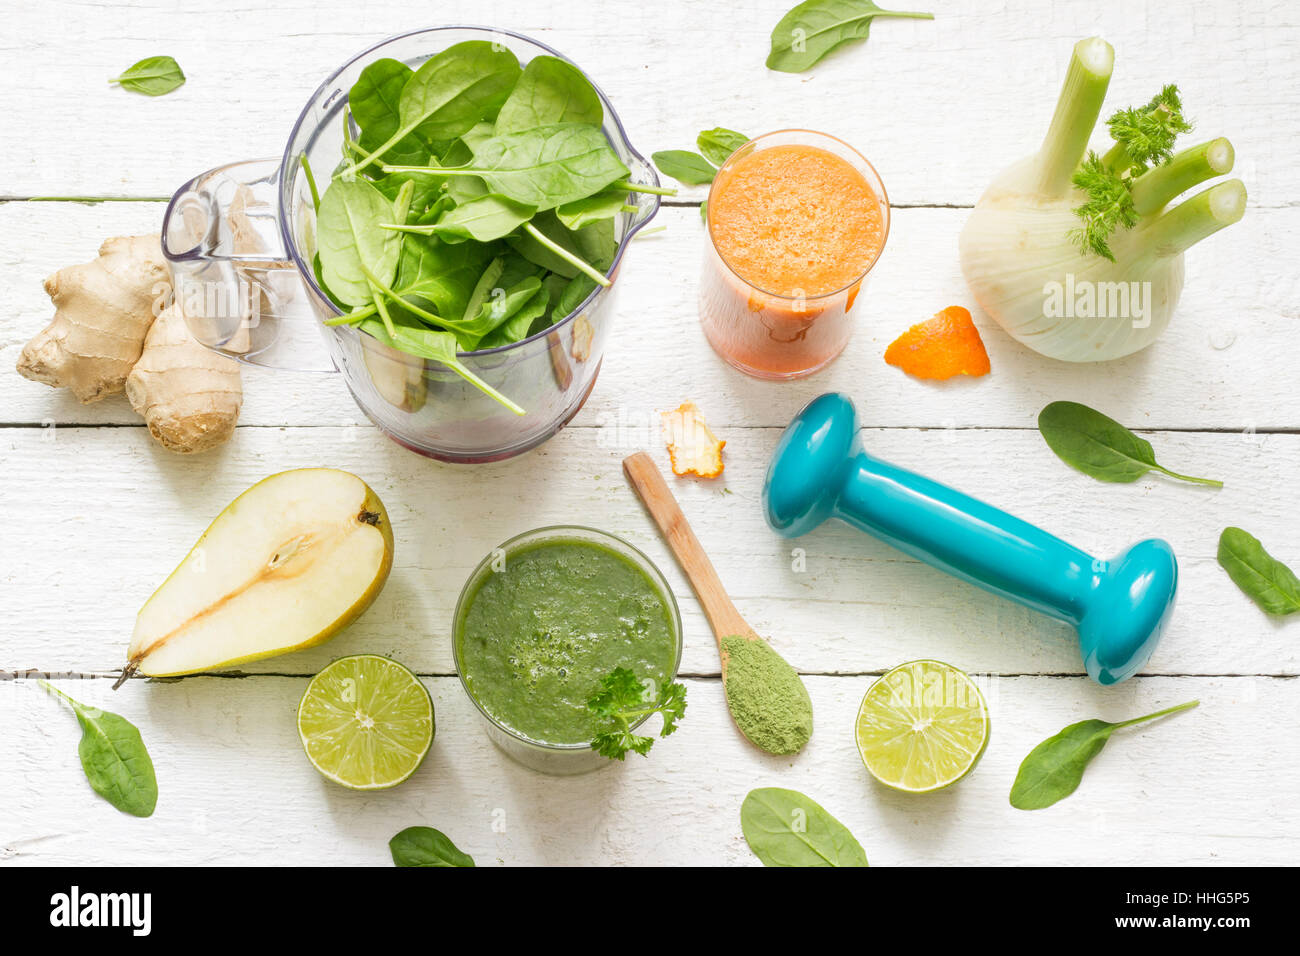 Fruits, vegetables, smoothie, blender, abstract health diet lifestyle concept - Stock Image